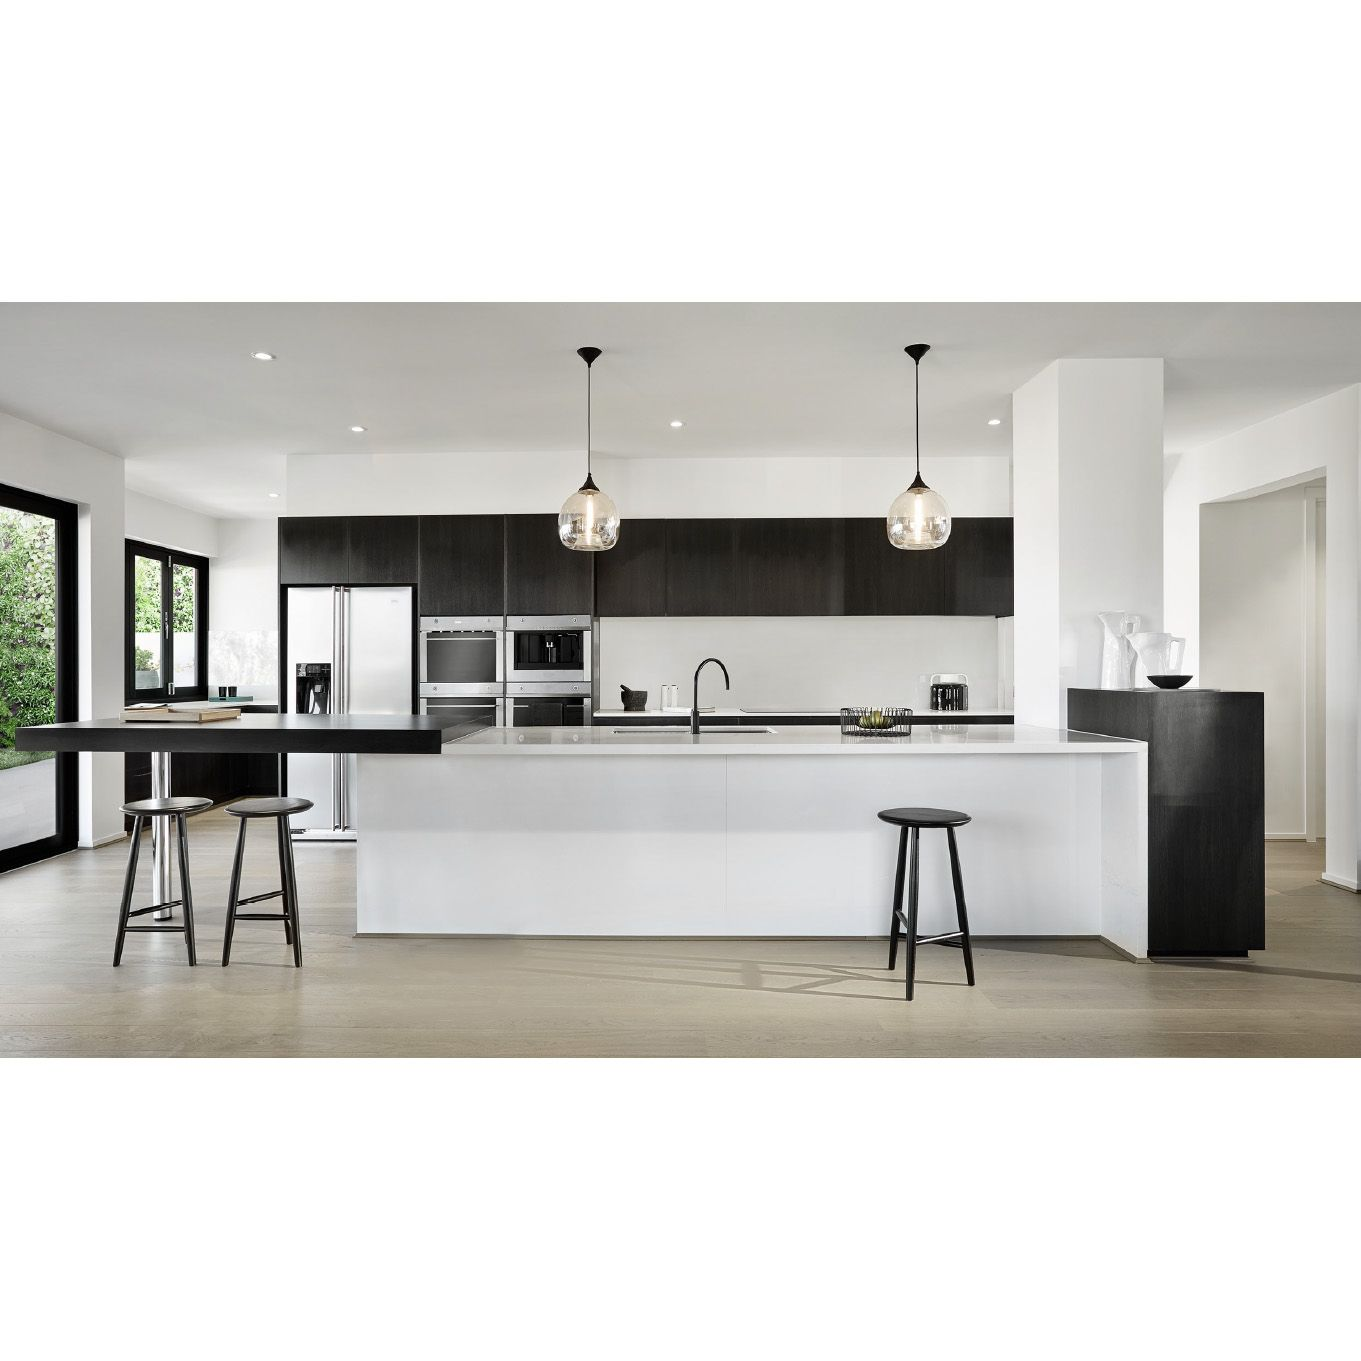 This Beautiful Kitchen From Bespoke By Ardenhomesau Features Our Onix Mixer Review Creepingthyme Info